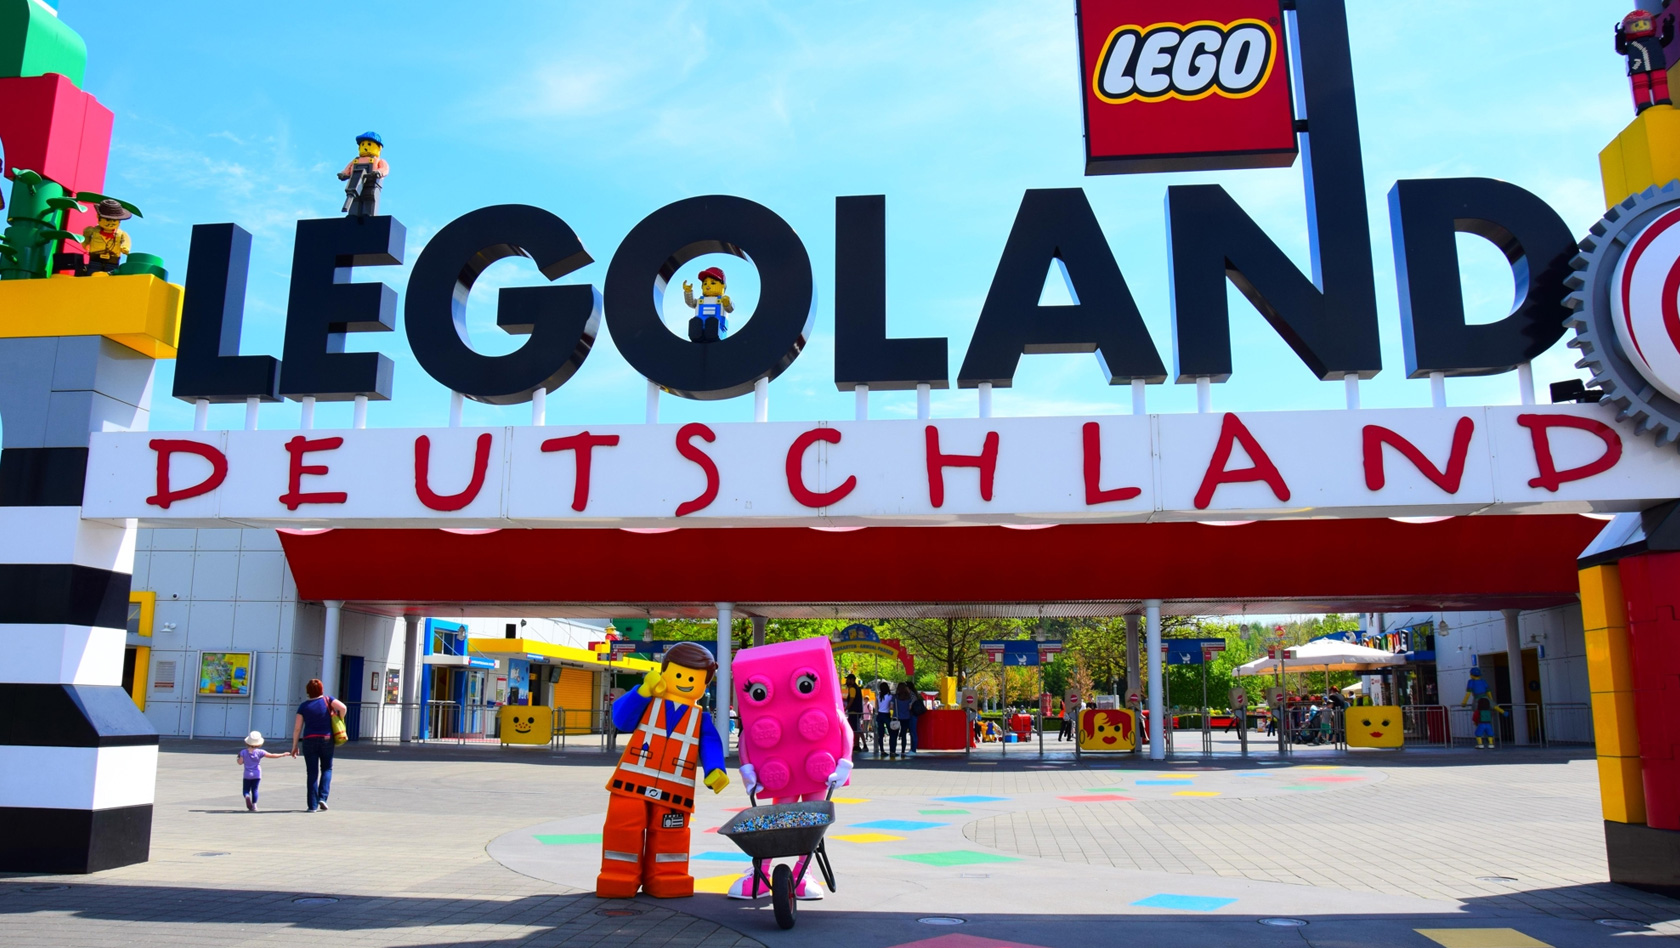 ikea family vorteil 2017 im legoland deutschland 2 tickets 1 preis. Black Bedroom Furniture Sets. Home Design Ideas